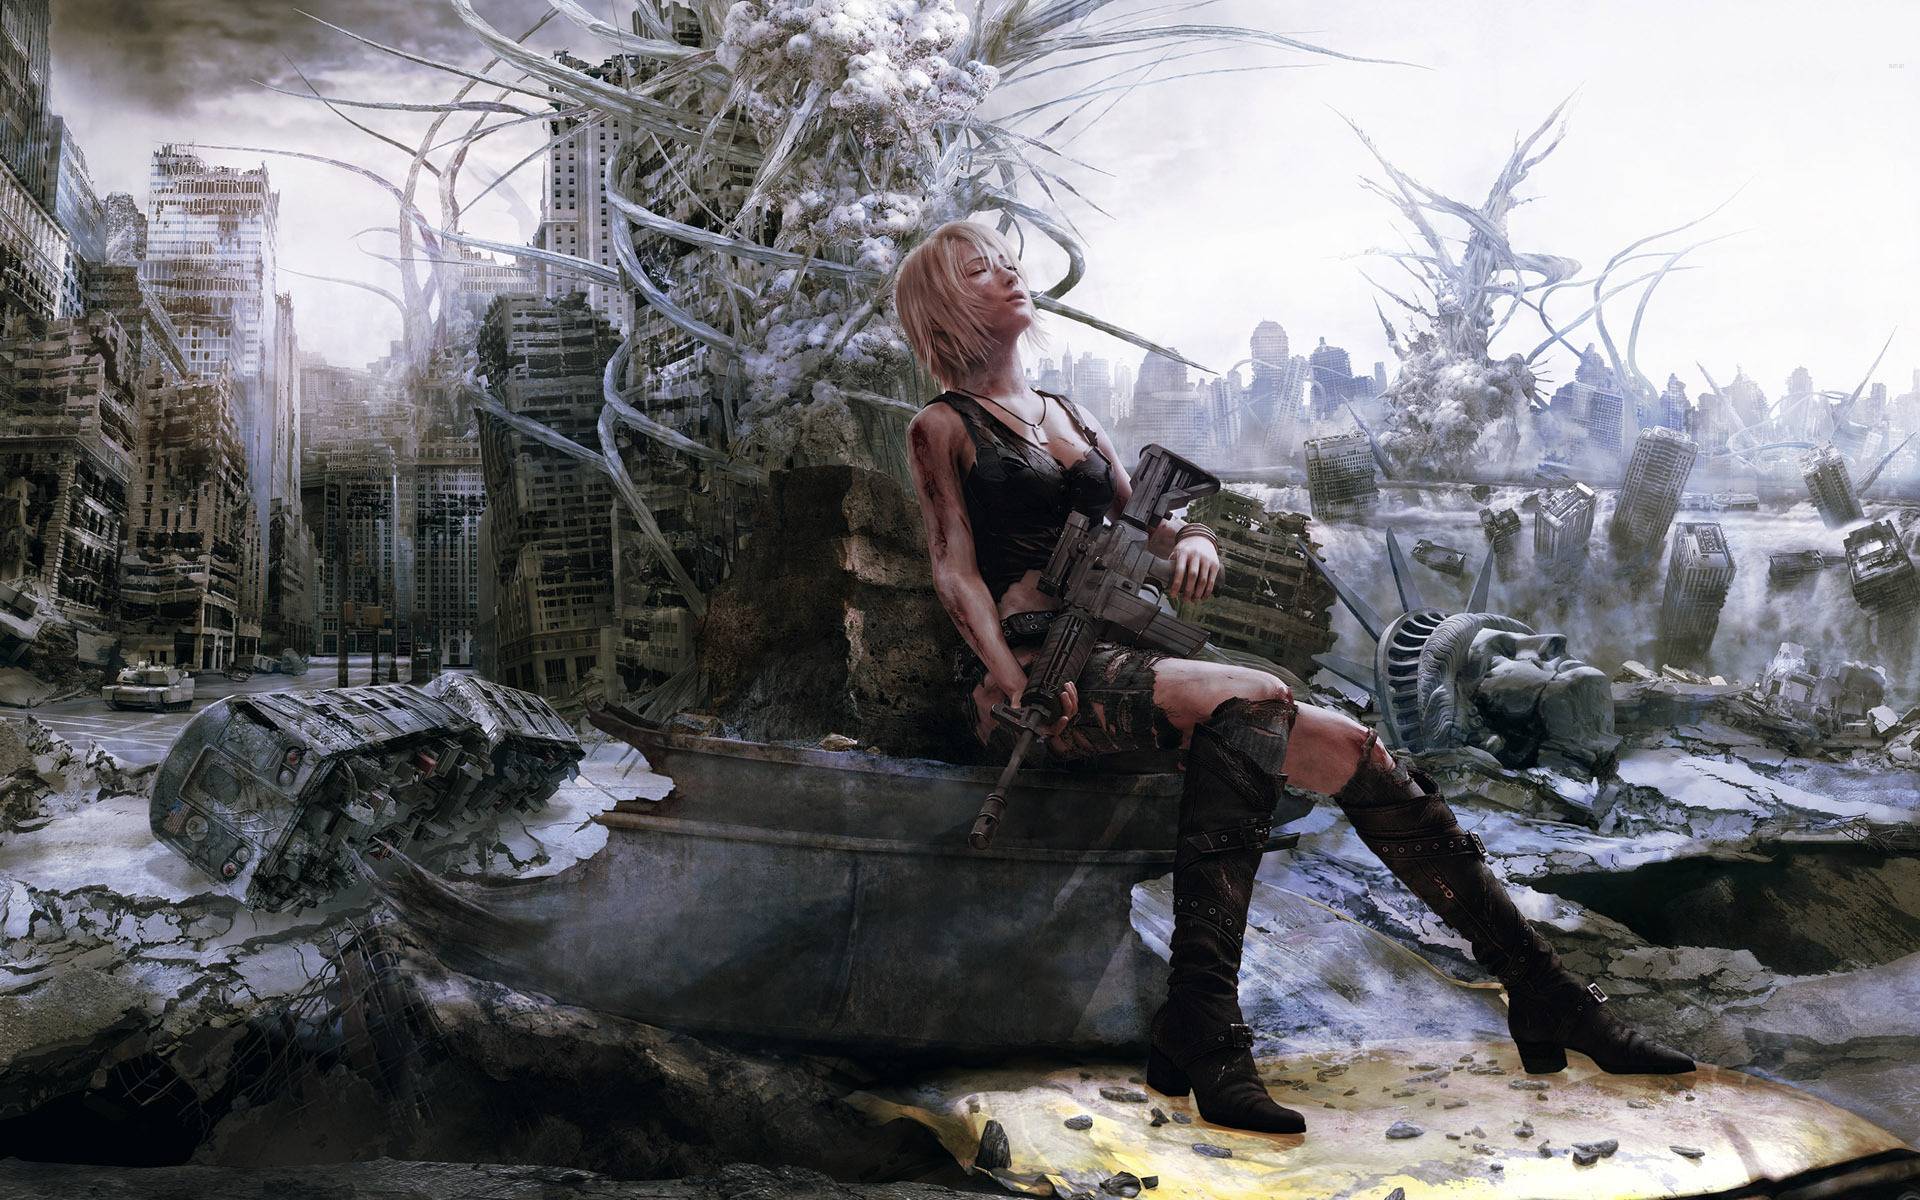 the 3rd birthday wallpaper ; gun-video-games-women-apocalyptic-snow-winter-artwork-CGI-mythology-The-3rd-Birthday-Aya-Brea-Parasite-Eve-screenshot-1920x1200-px-718062